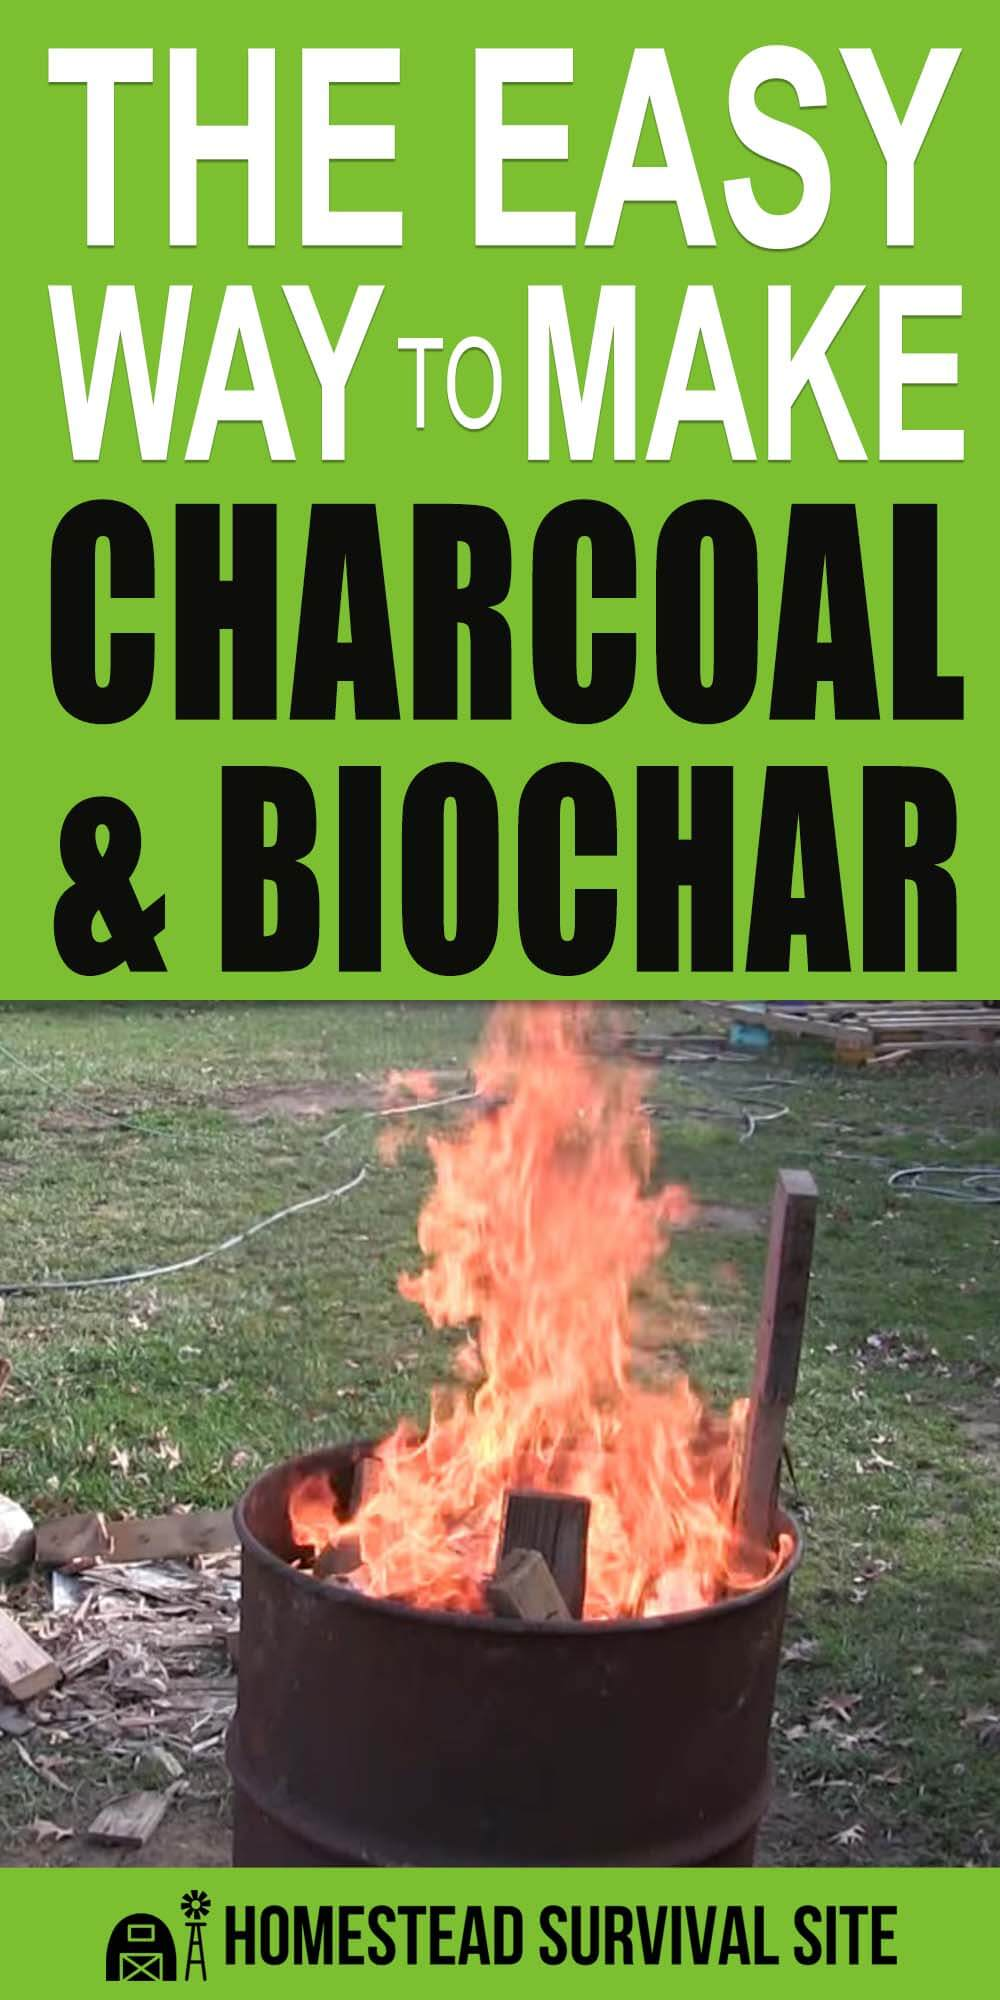 The Easy Way To Make Charcoal and Biochar